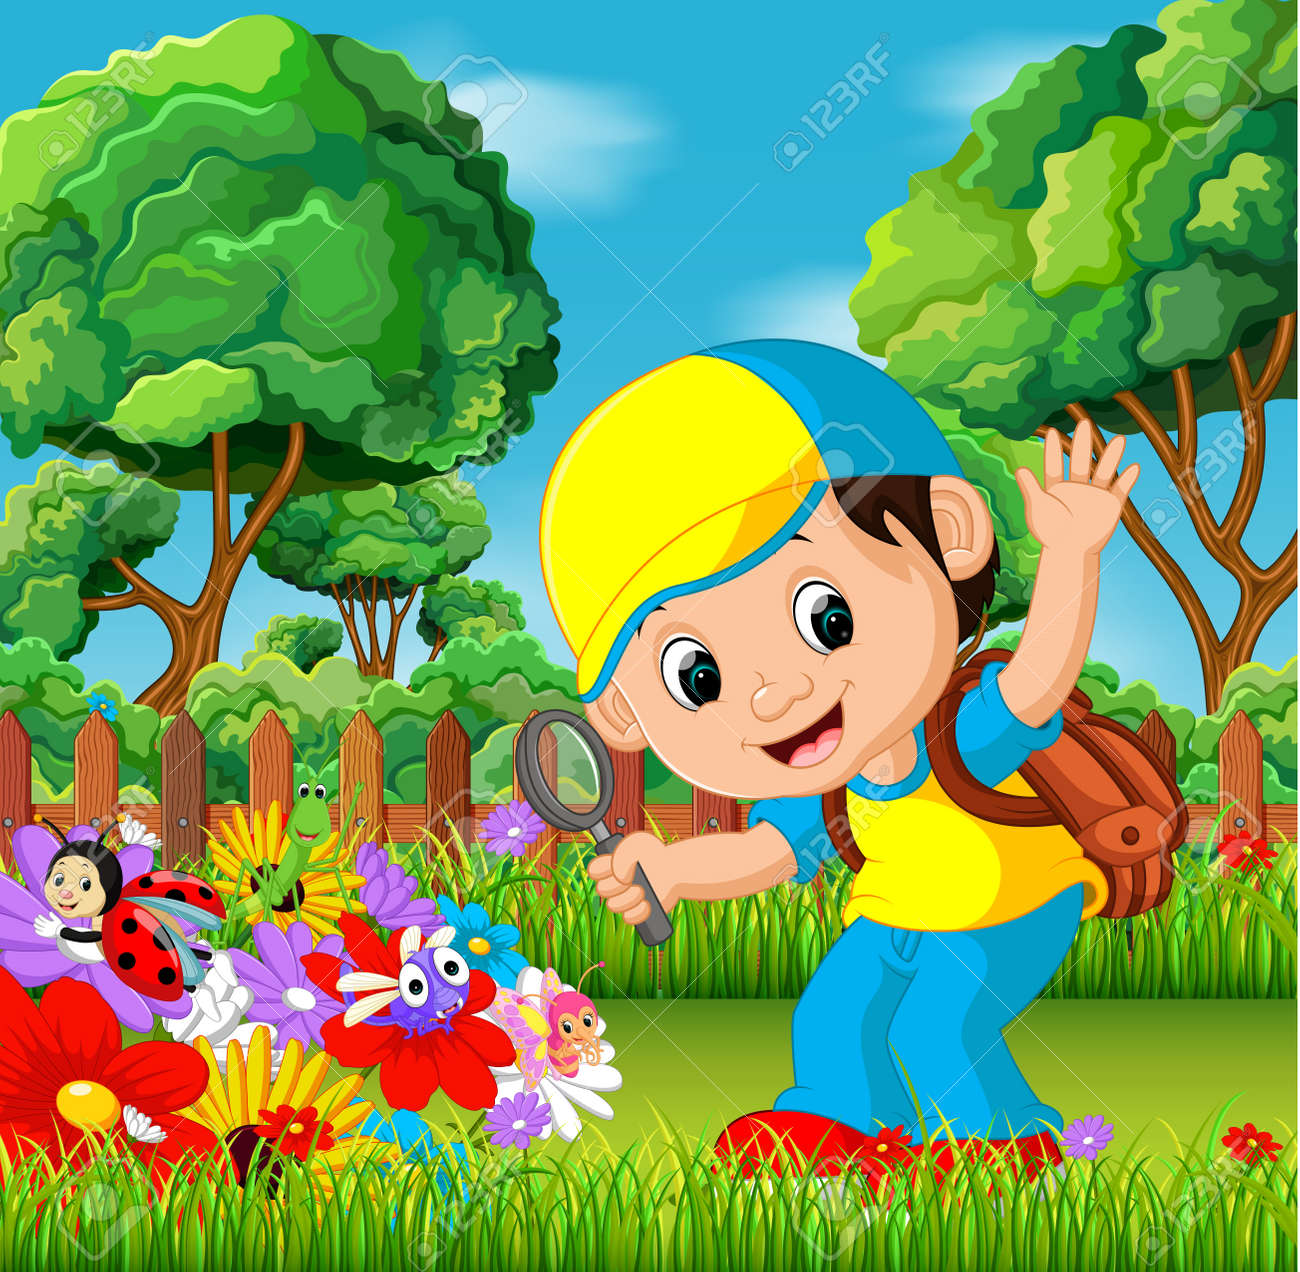 cute boy holding magnifying glass in a flower garden royalty free cliparts vectors and stock illustration image 91335908 cute boy holding magnifying glass in a flower garden